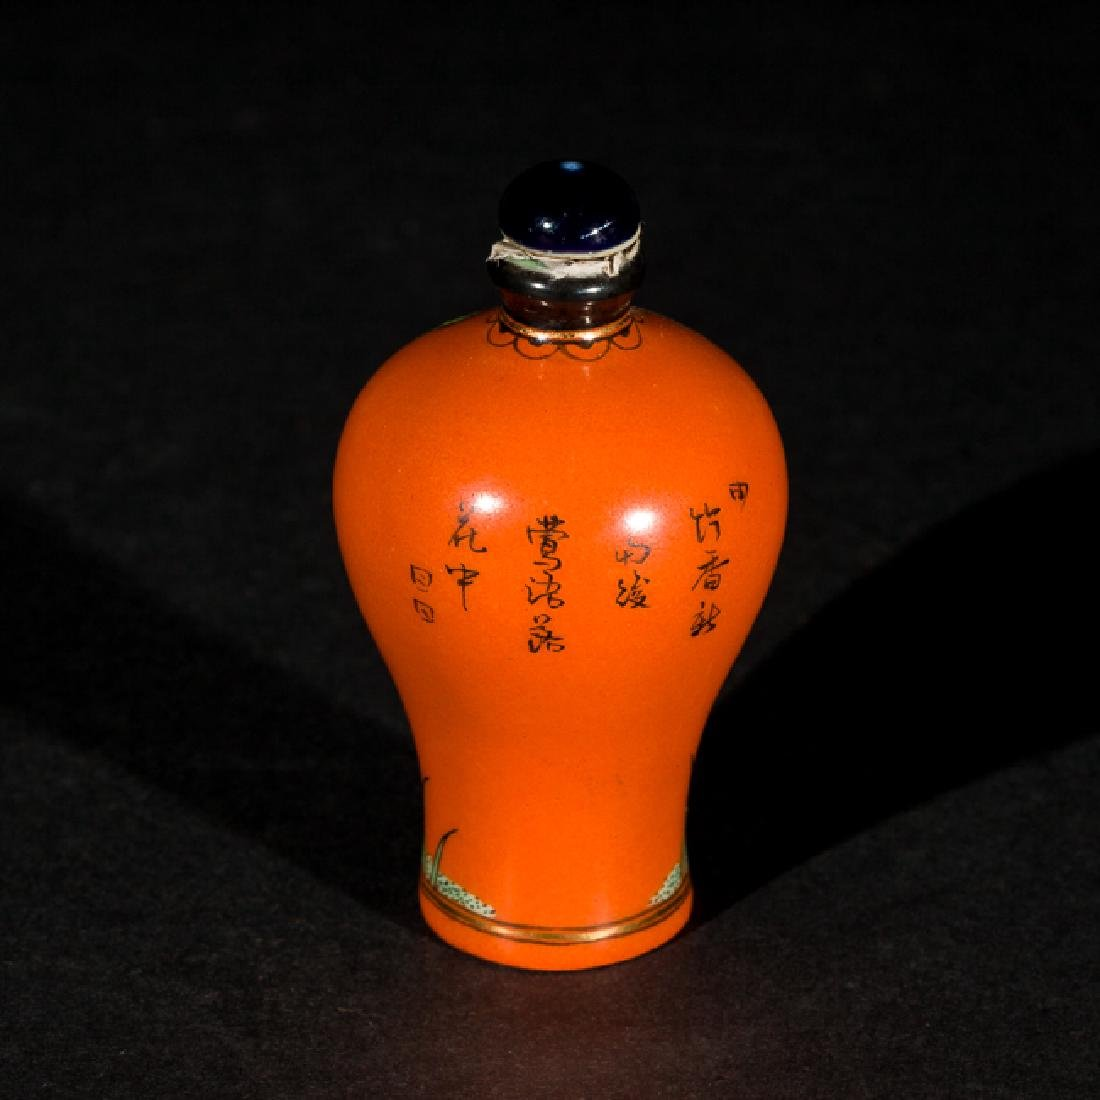 Antique Porcelain Snuff Bottle, Early 20th Century - 3